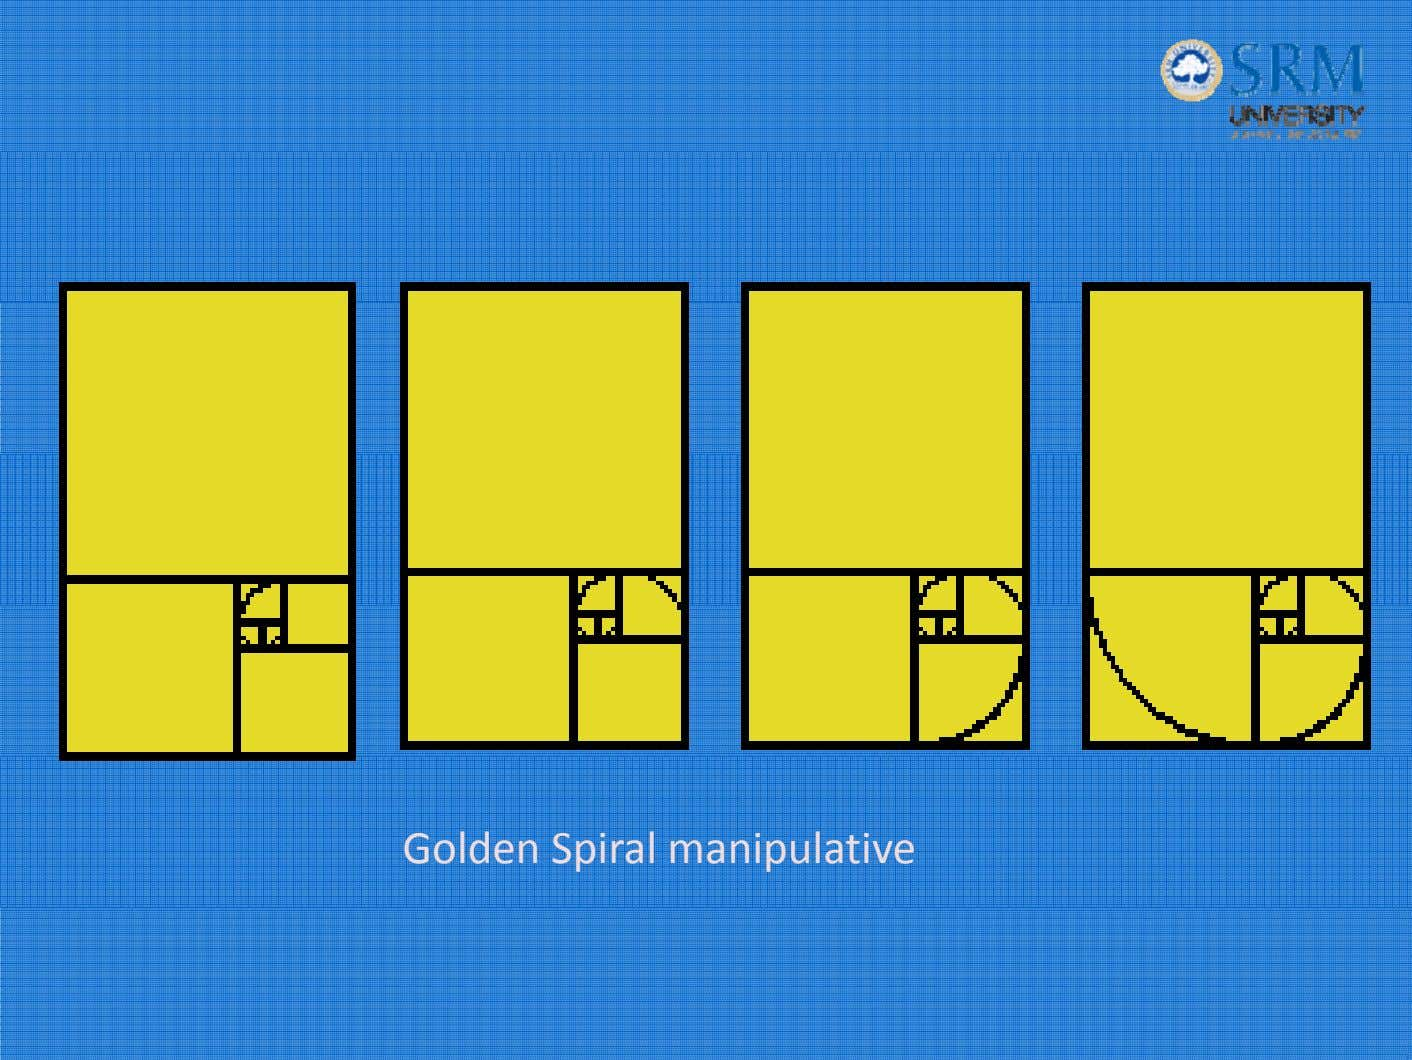 Golden Spiral manipulative